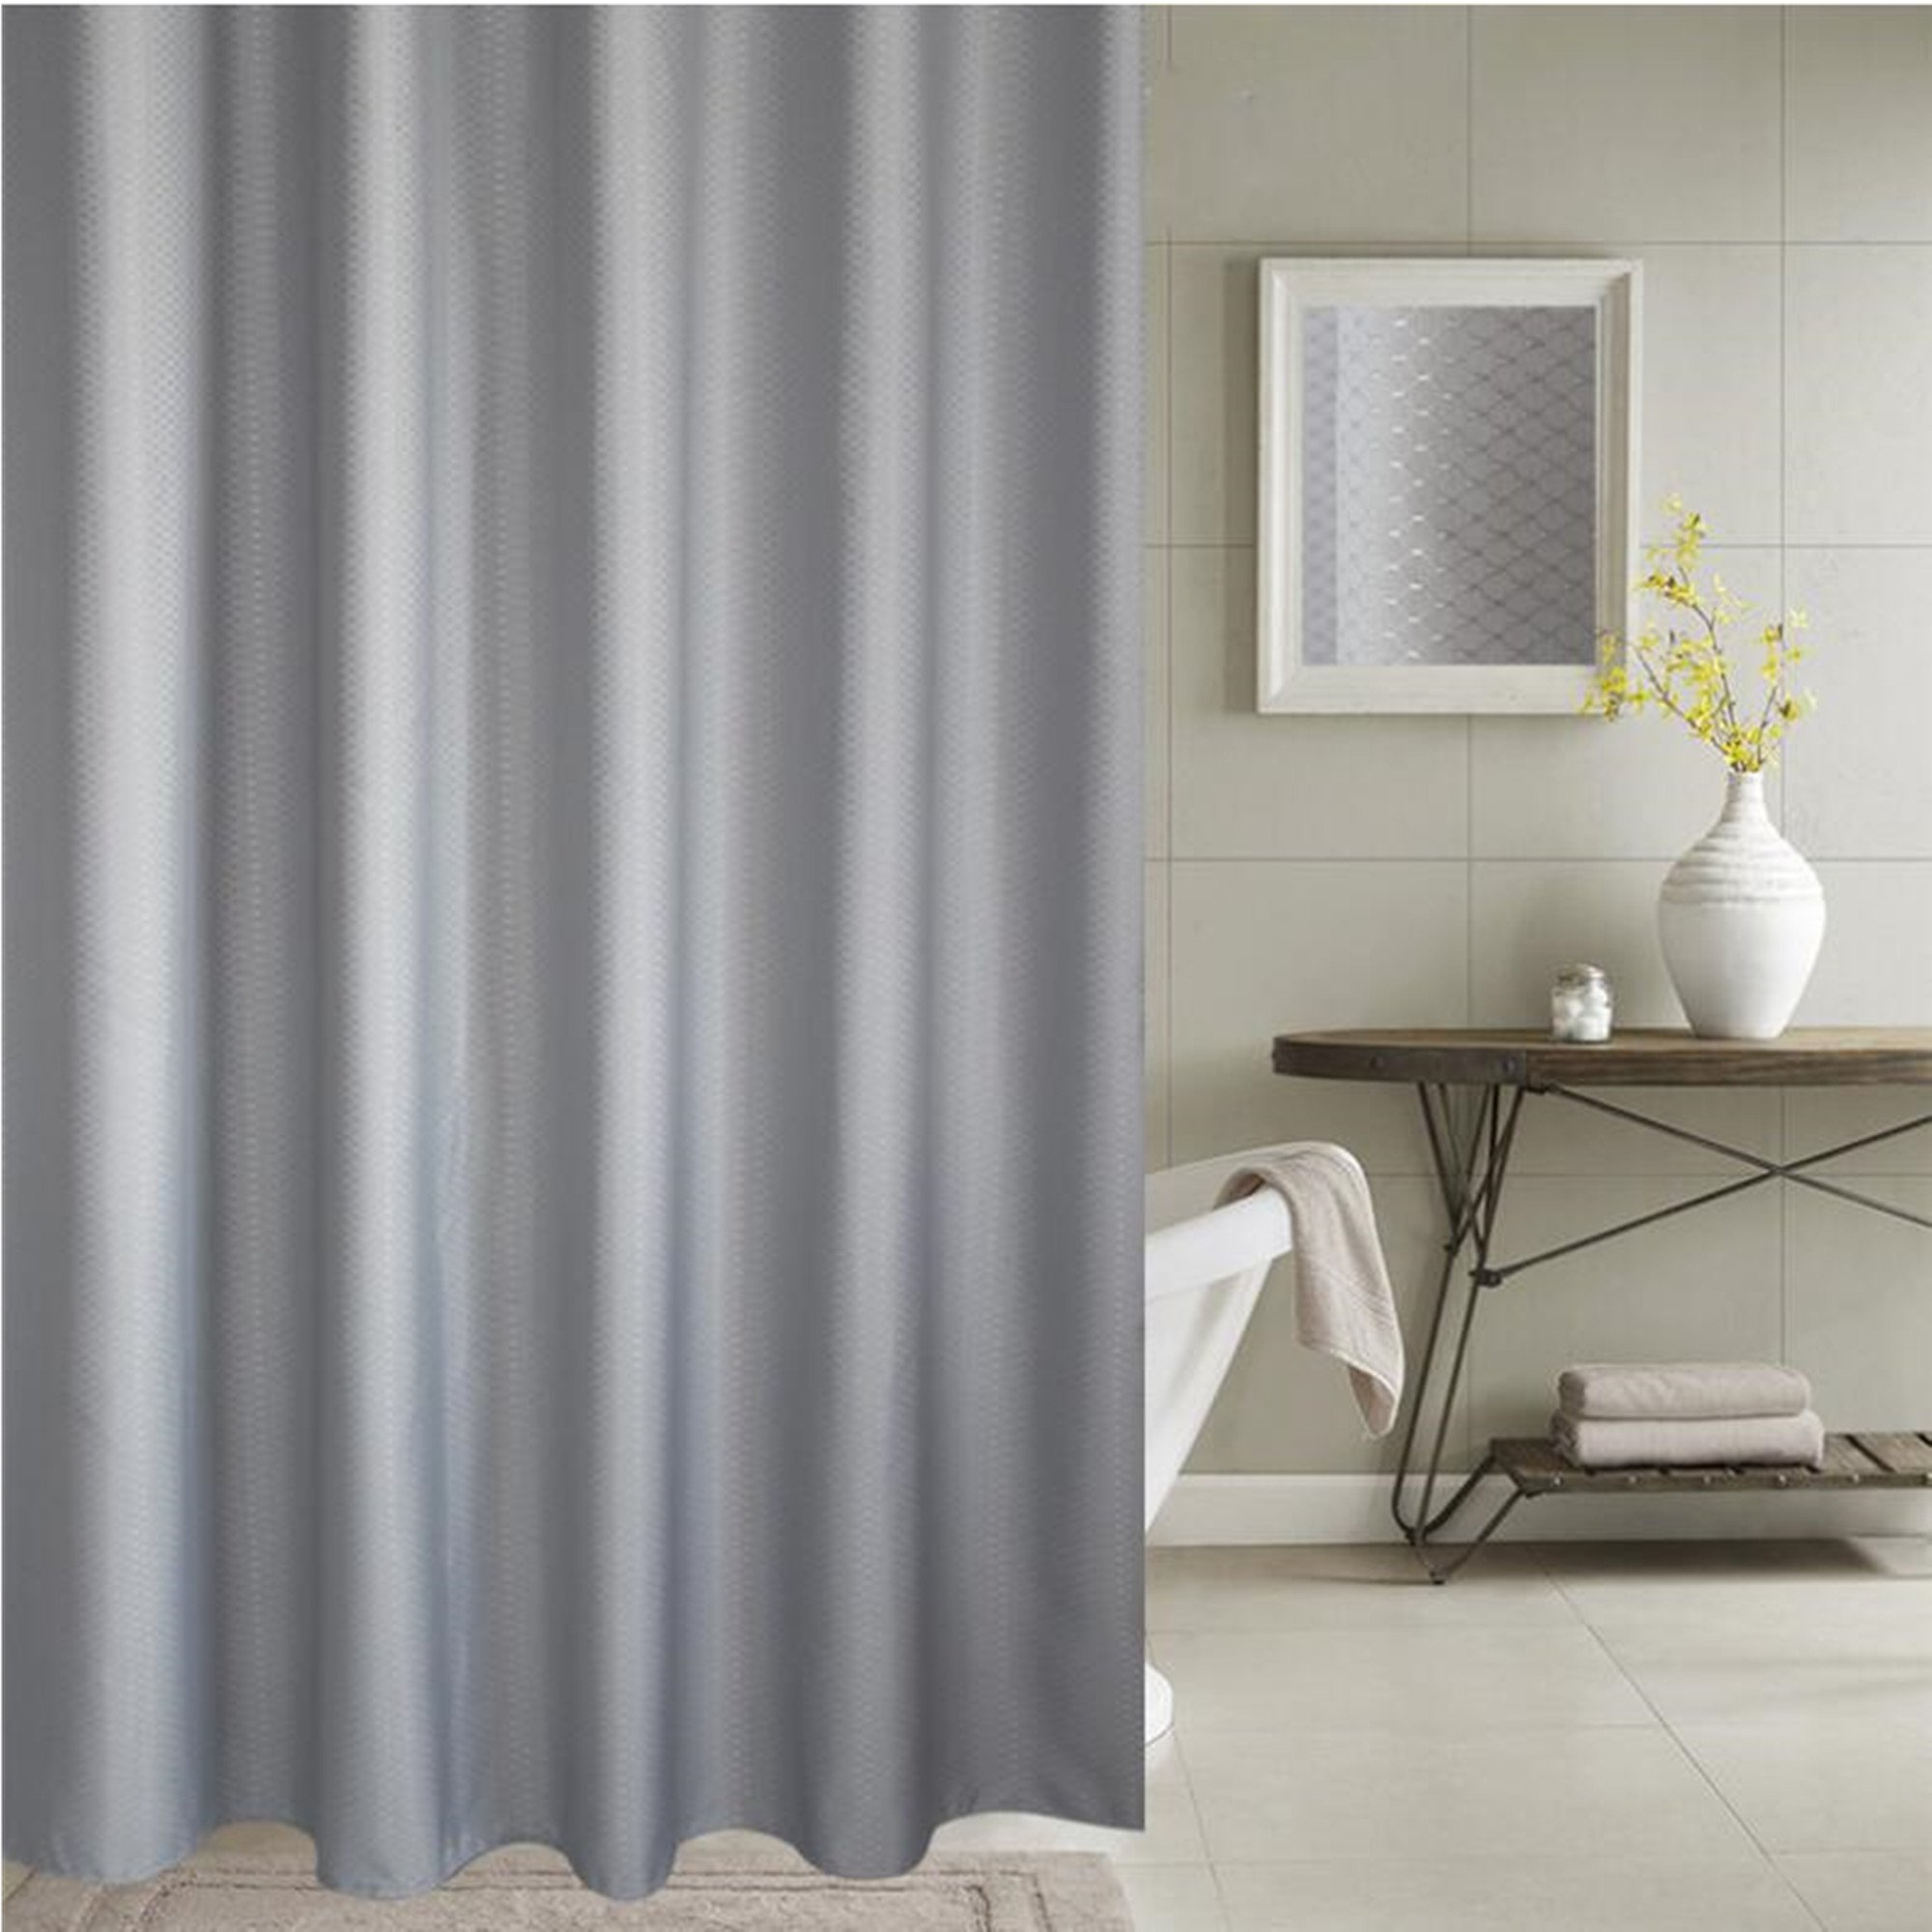 Cryseam Thick Shower Curtain Polyester Fabric 72u0027u0027X80u0027u0027 Mildew Free  Water Repellent Non Toxic, Eco Friendly, No Chemical Odor, Rust Proof  Grommets Plastic ...